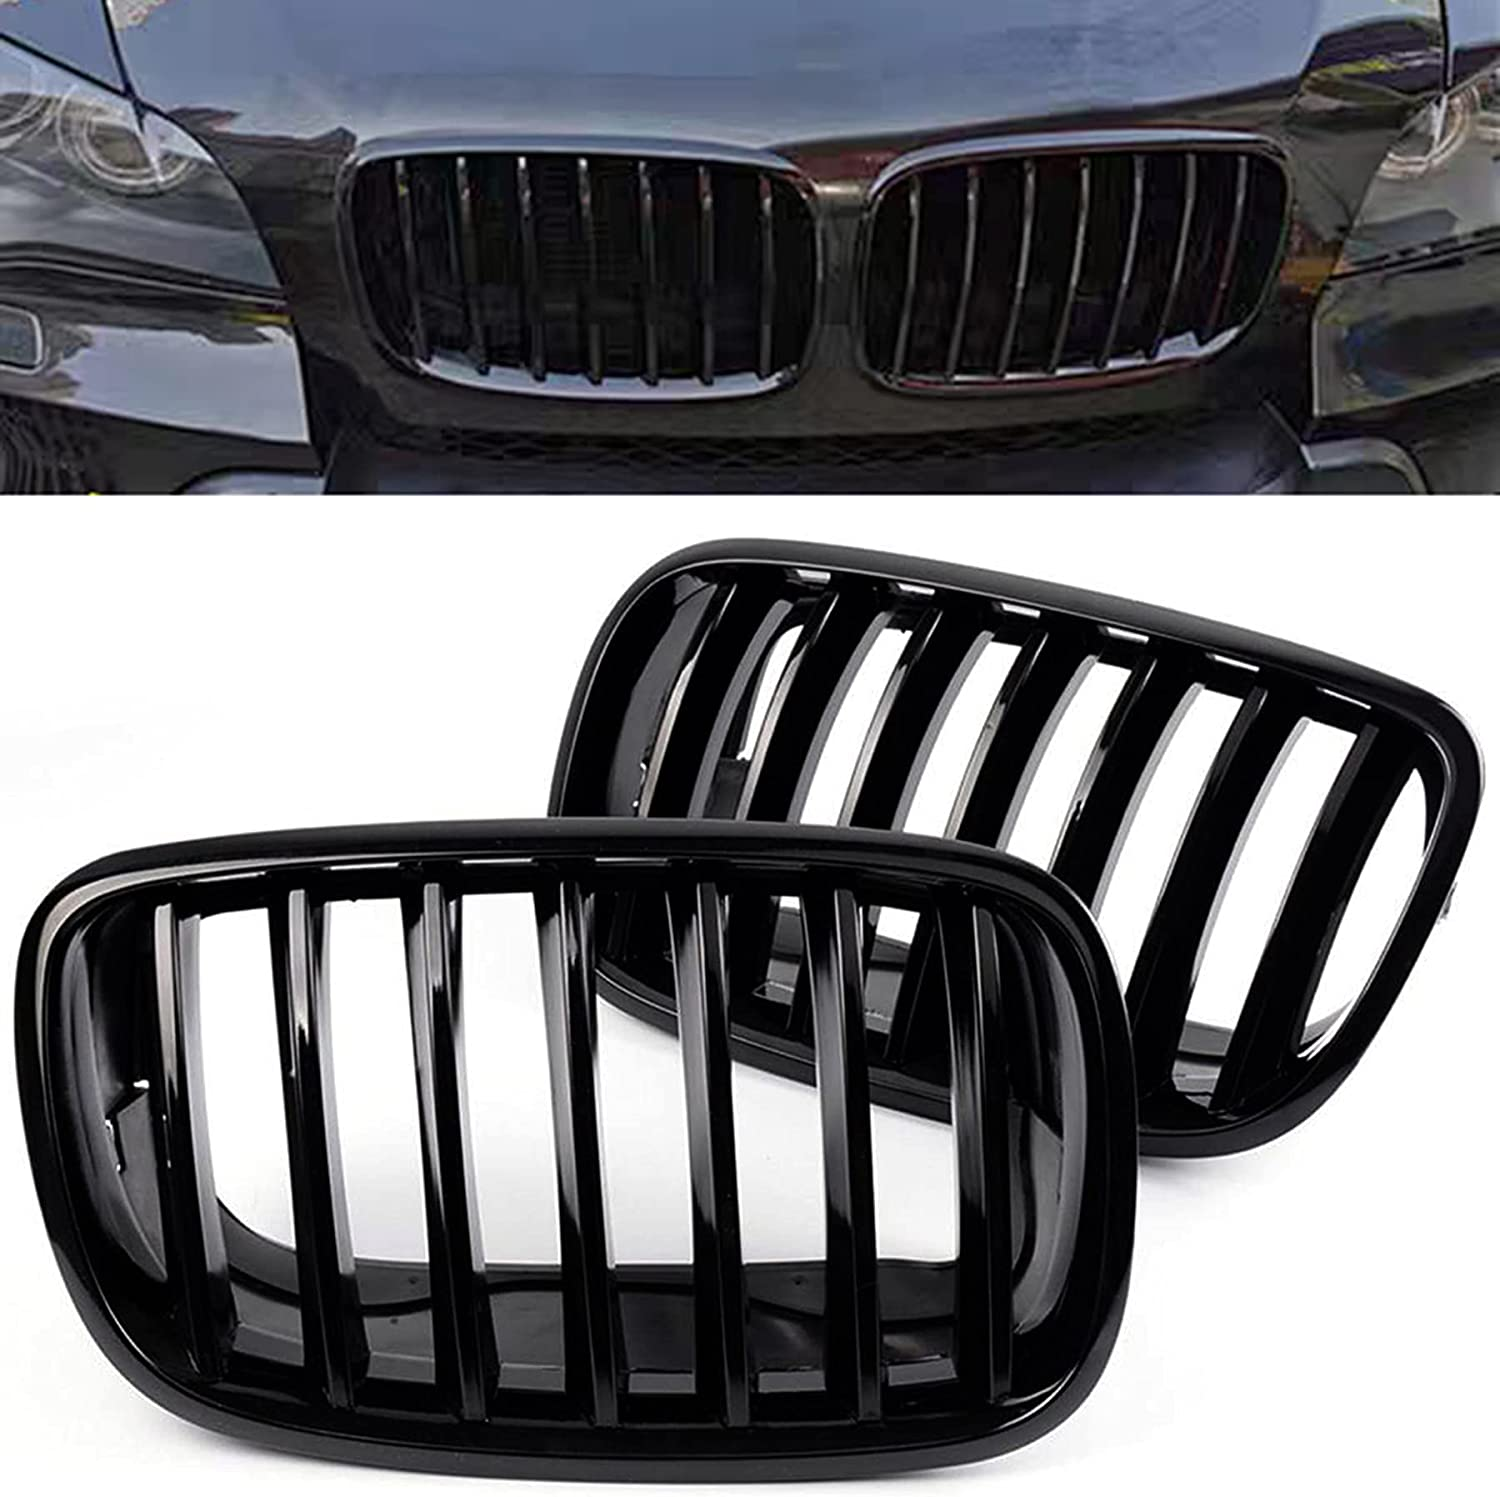 Choice BILLDIO Front Grille For 2007-2014 BMW X6 E71,ABS X5 Popular products E70 Gl